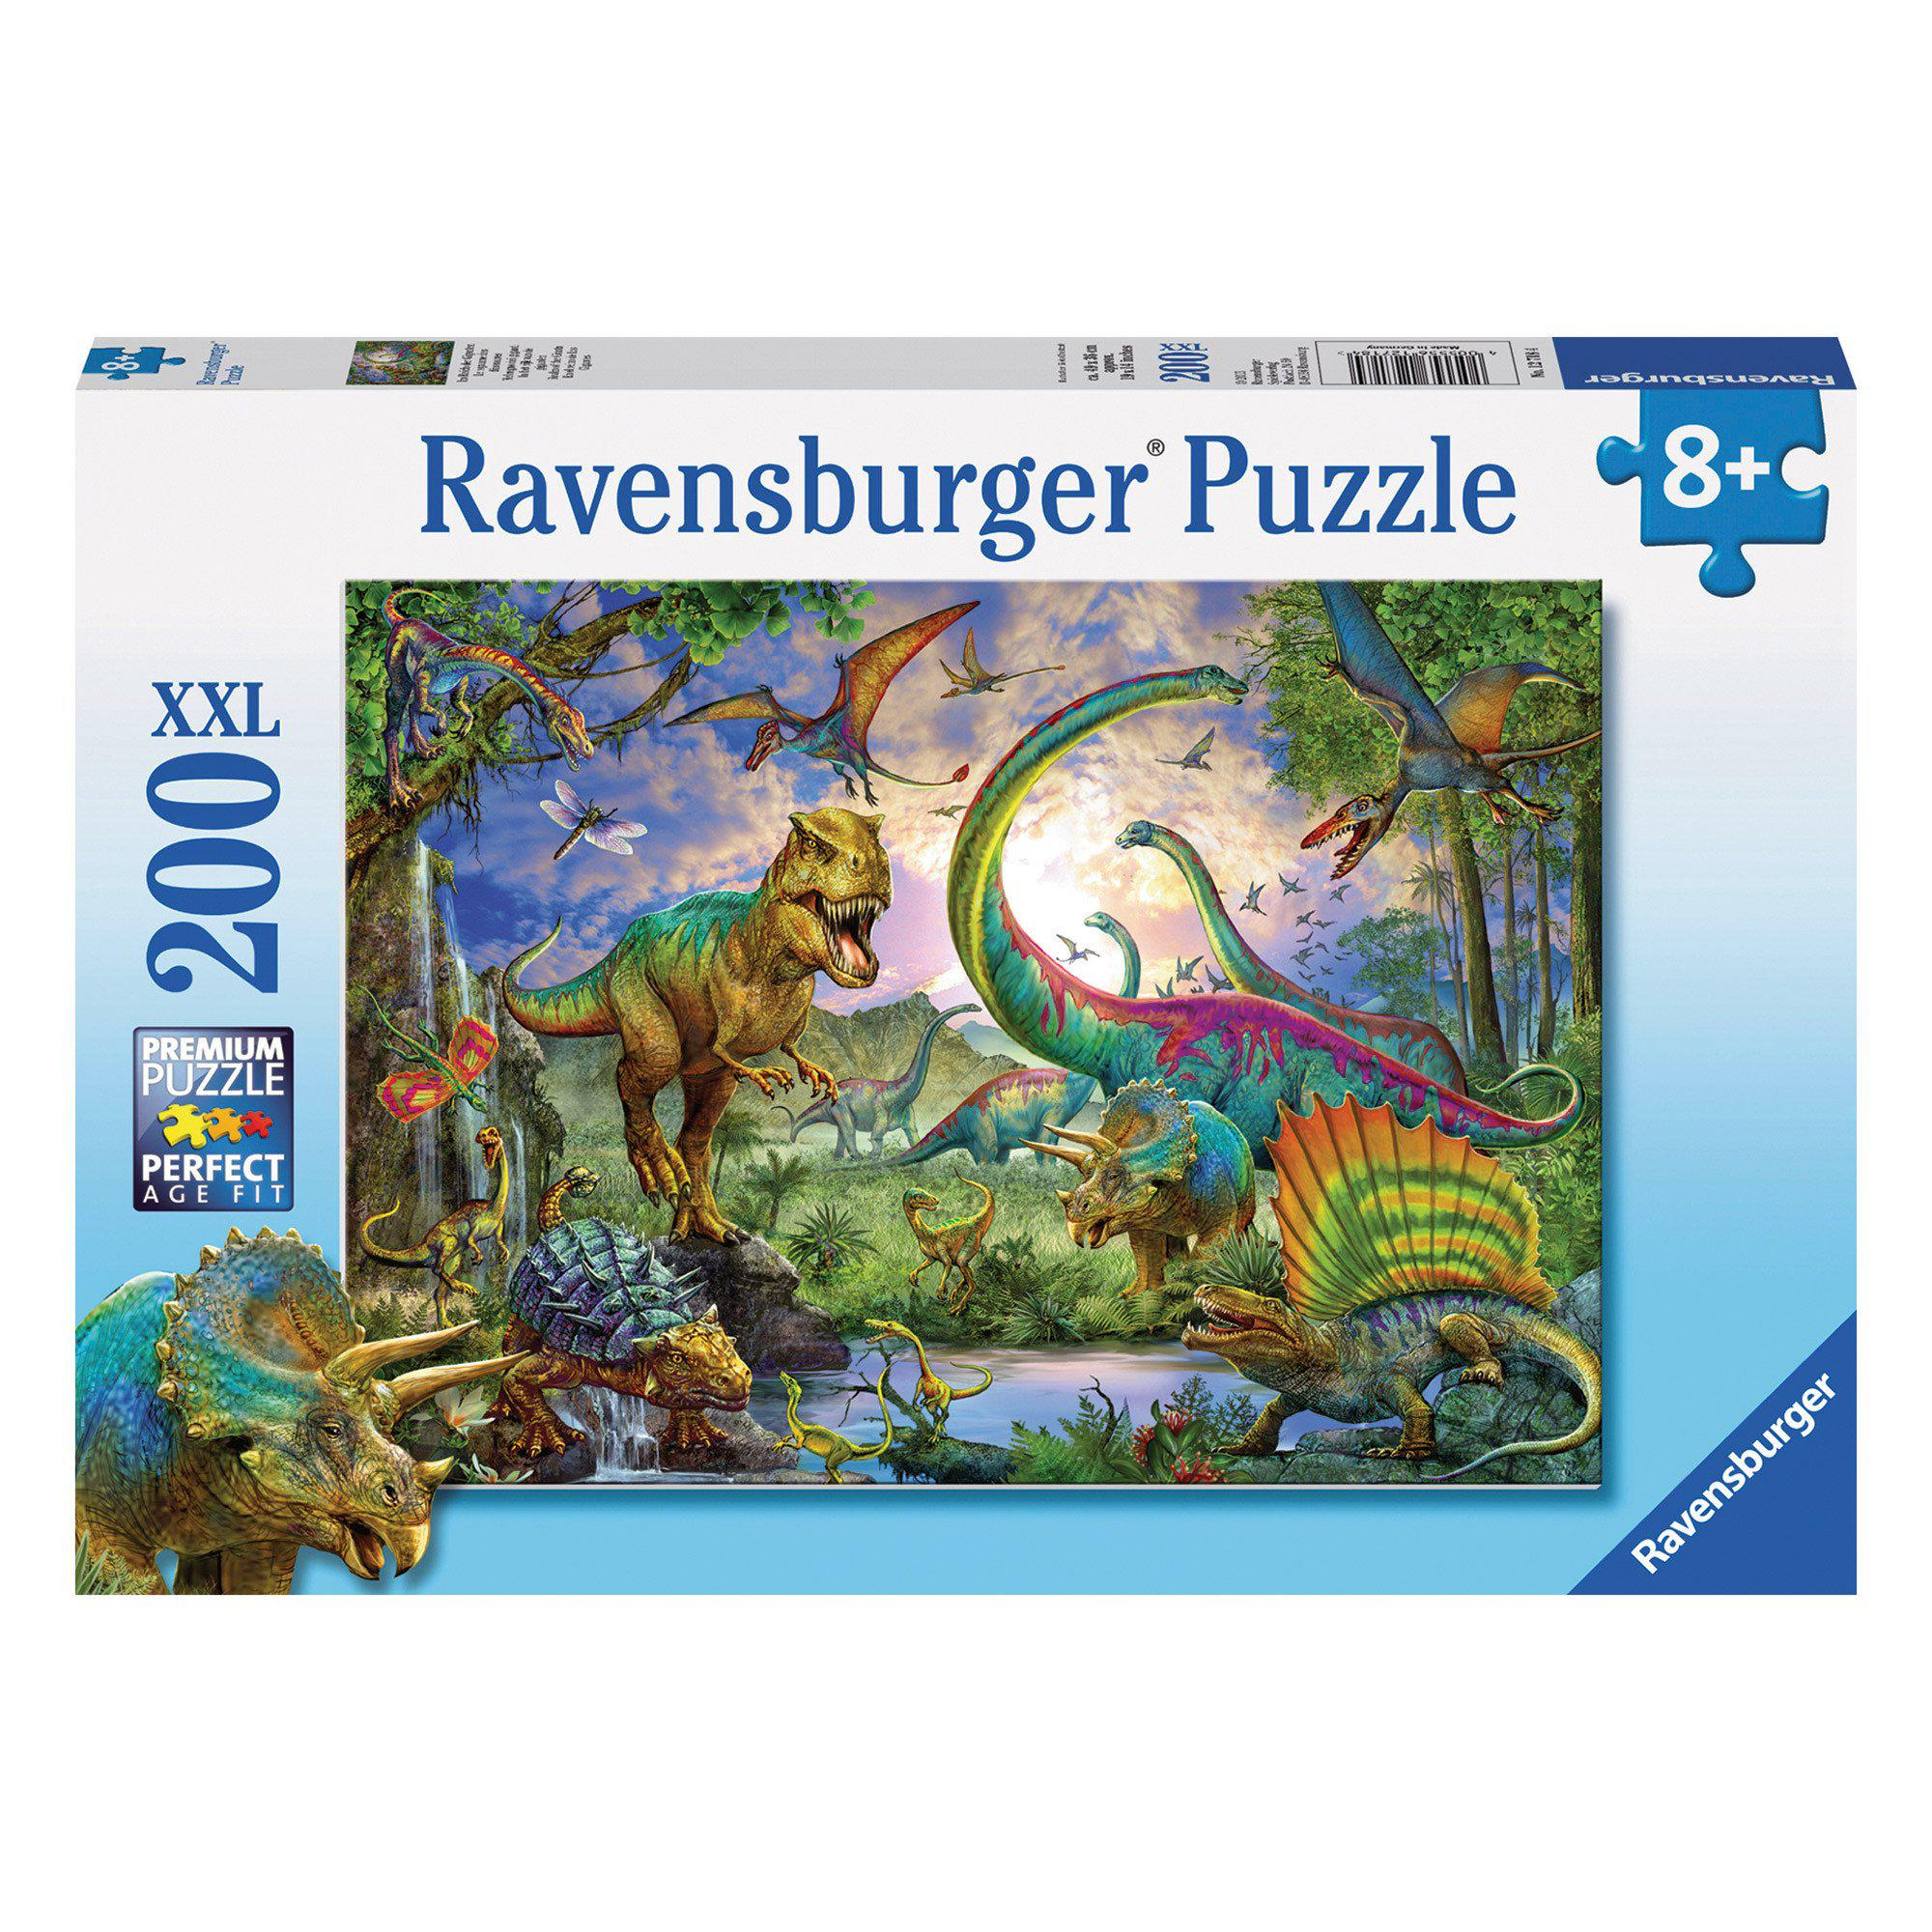 Ravensburger Puzzle - Realm of the Giants Dinosaurs Puzzle 200 pieces